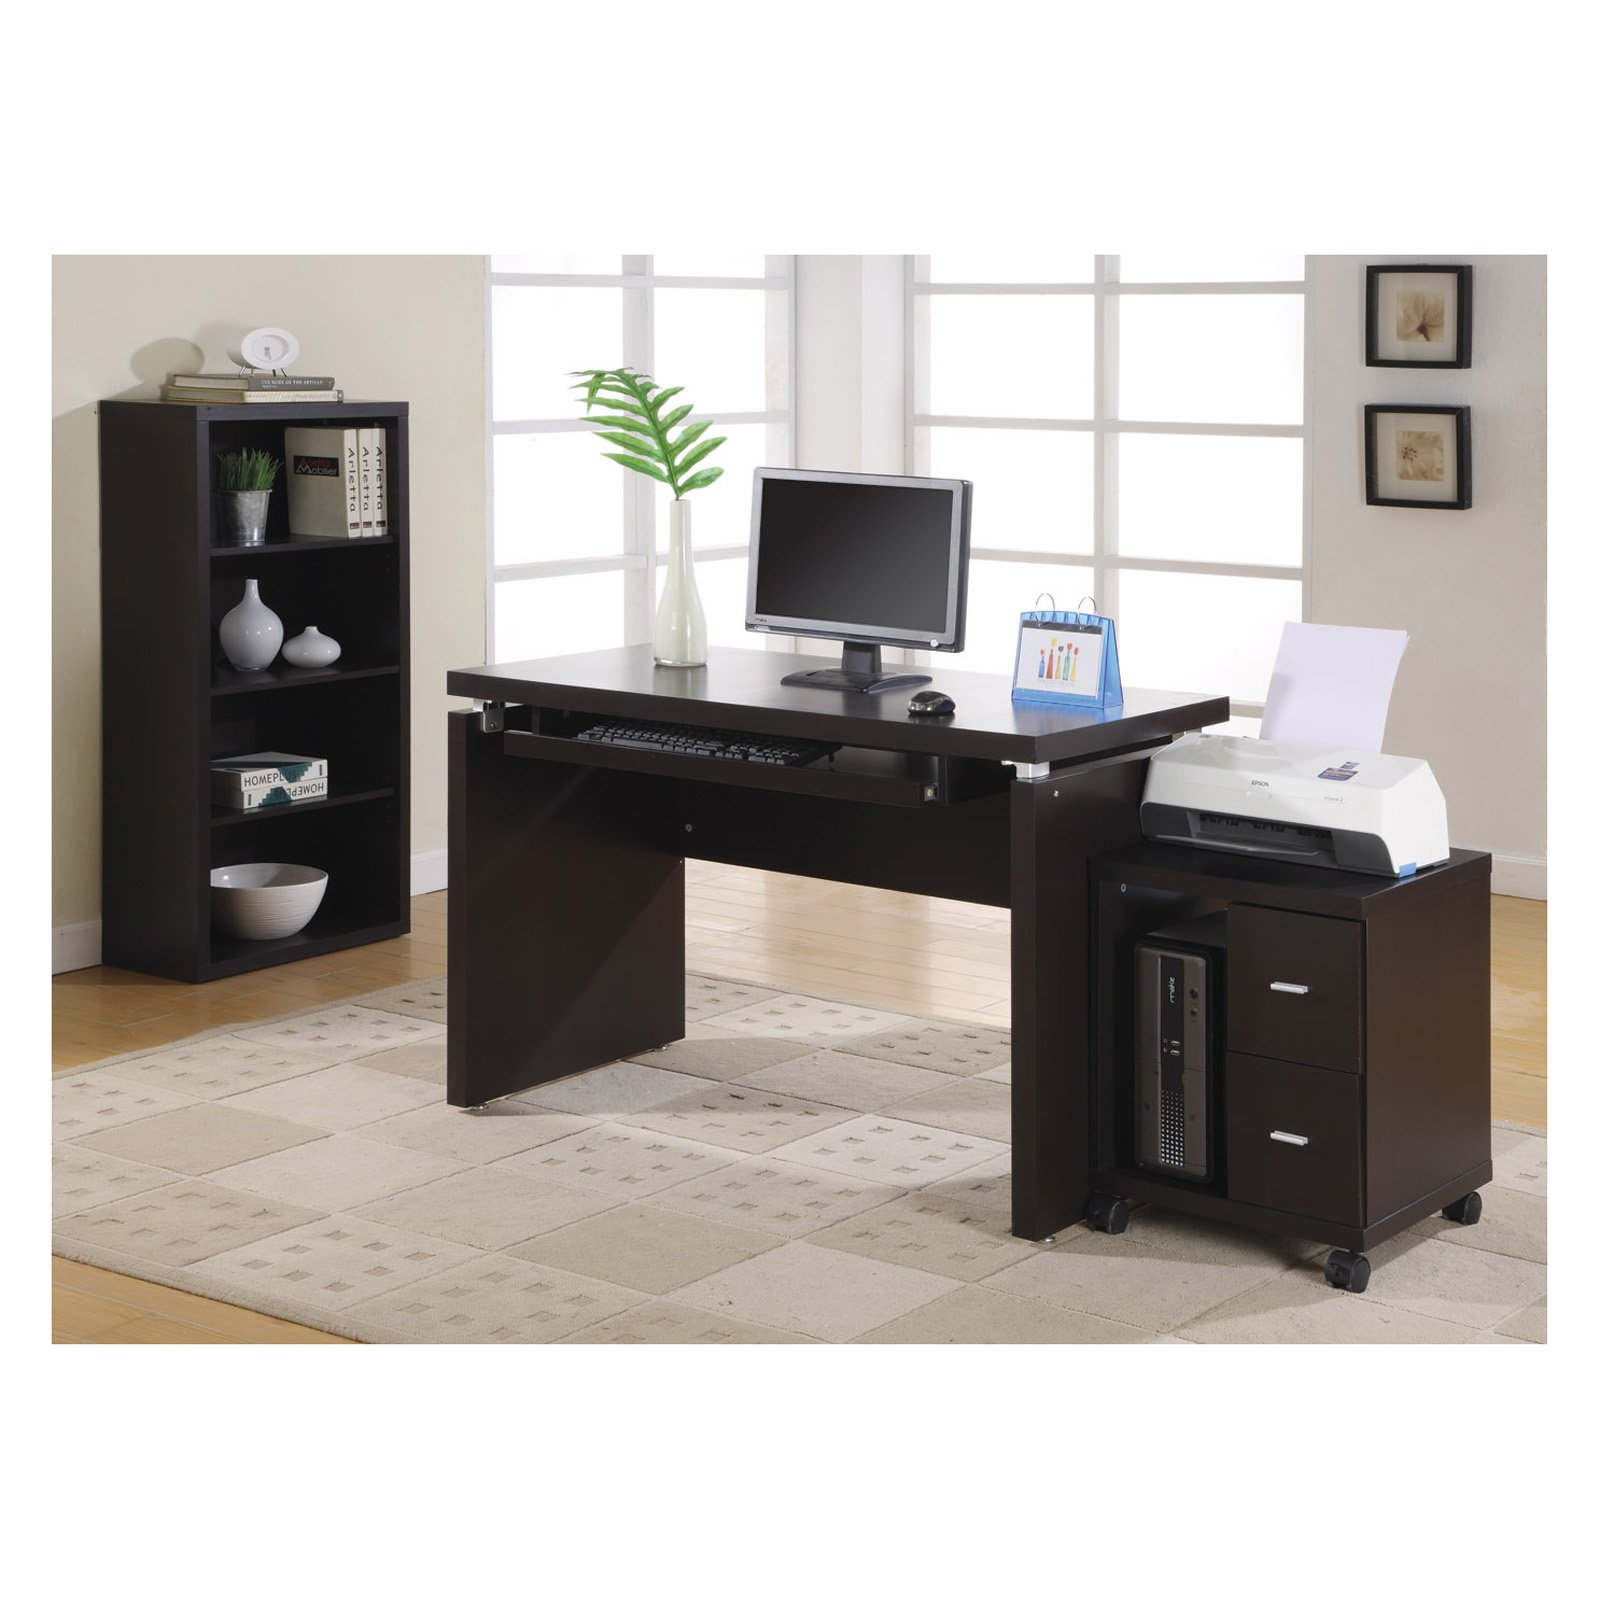 Monarch Cappuccino In Computer Desk Walmart Com